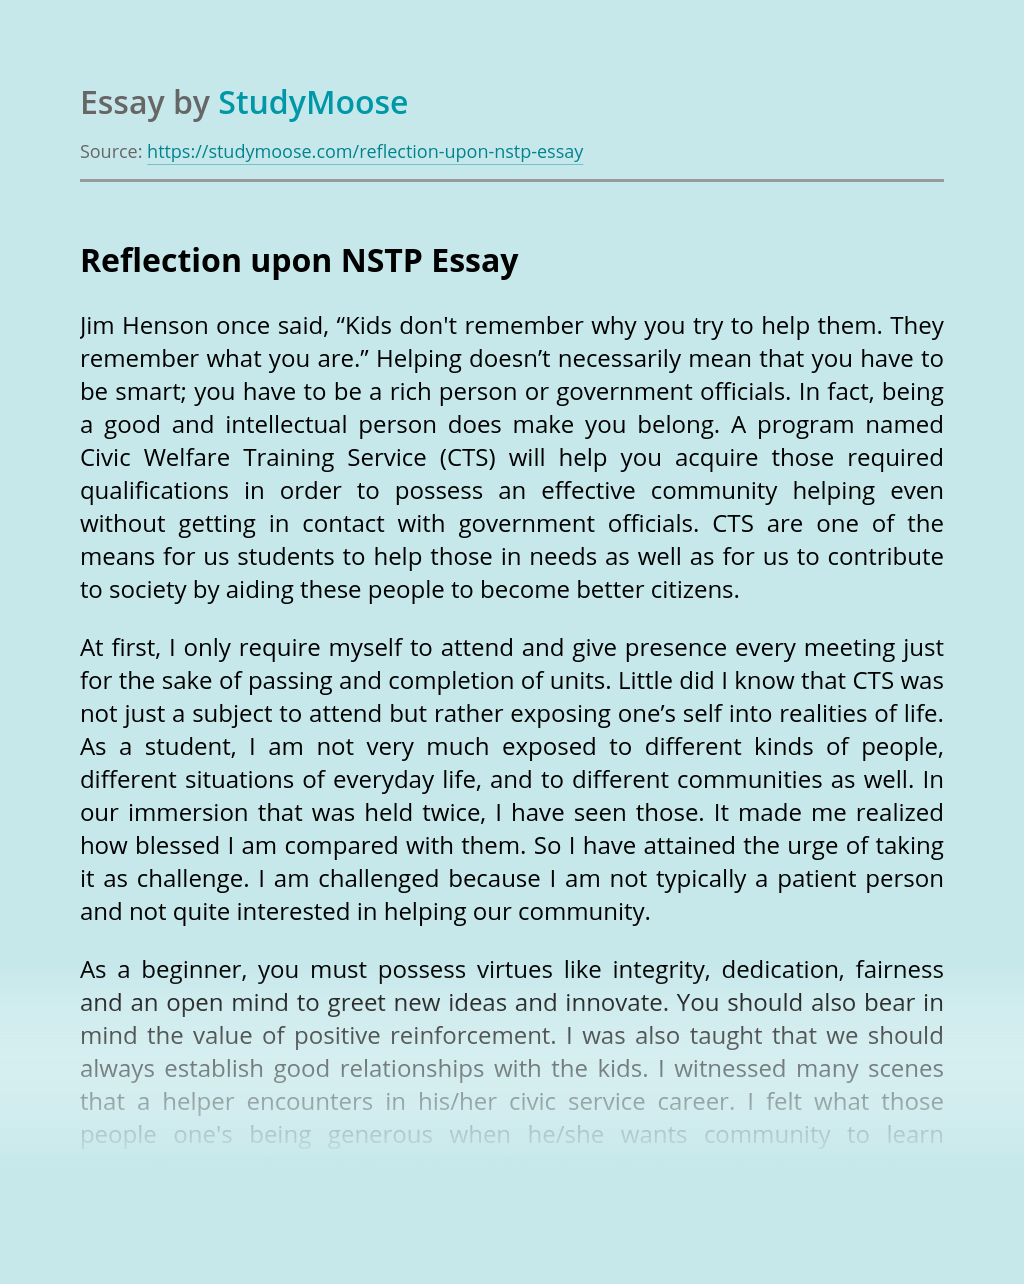 Reflection upon NSTP